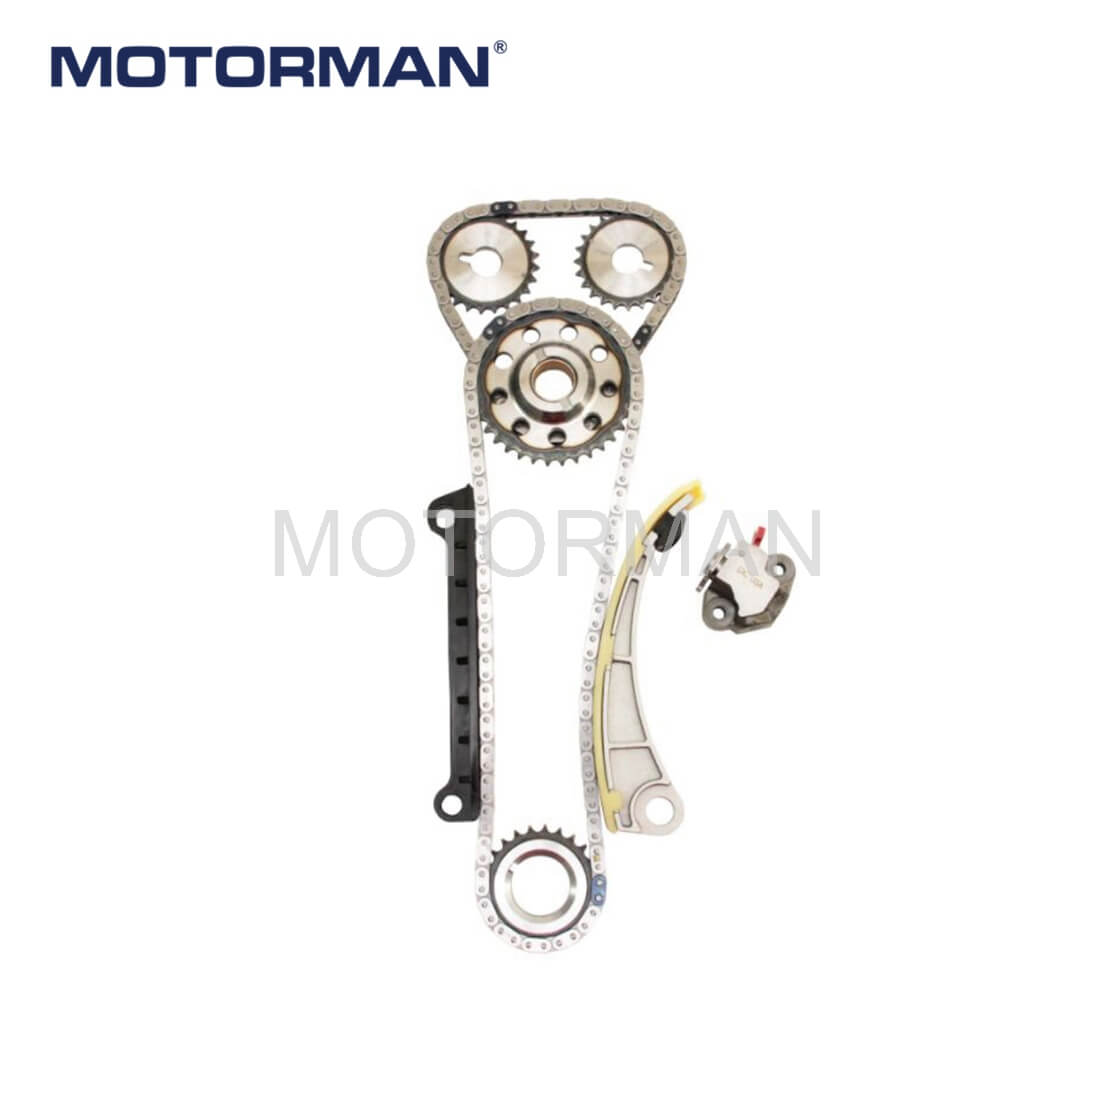 Motorman Timing Chain Kits 1276277E00